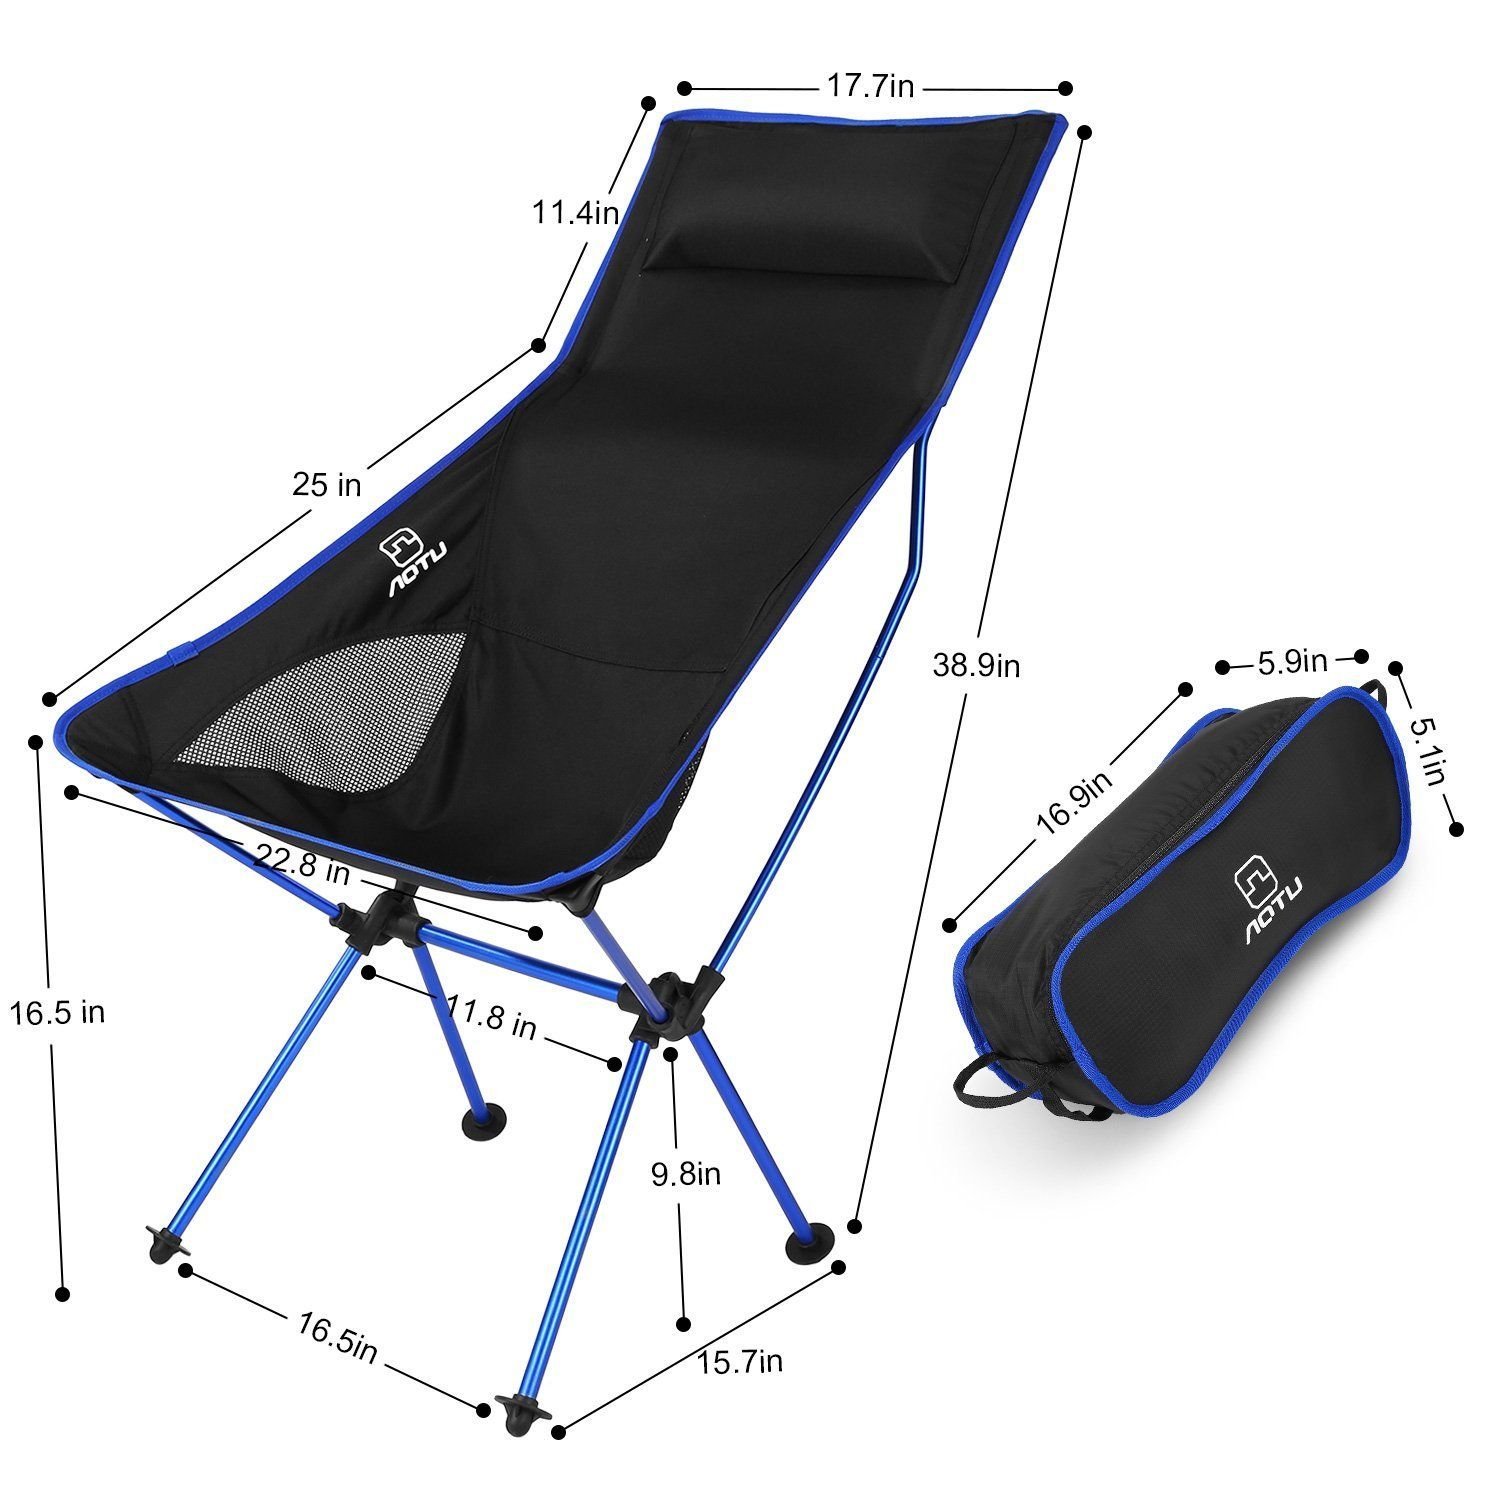 OUTAD Ultralight Outdoor Picnic Fishing Camping Folding Chairs